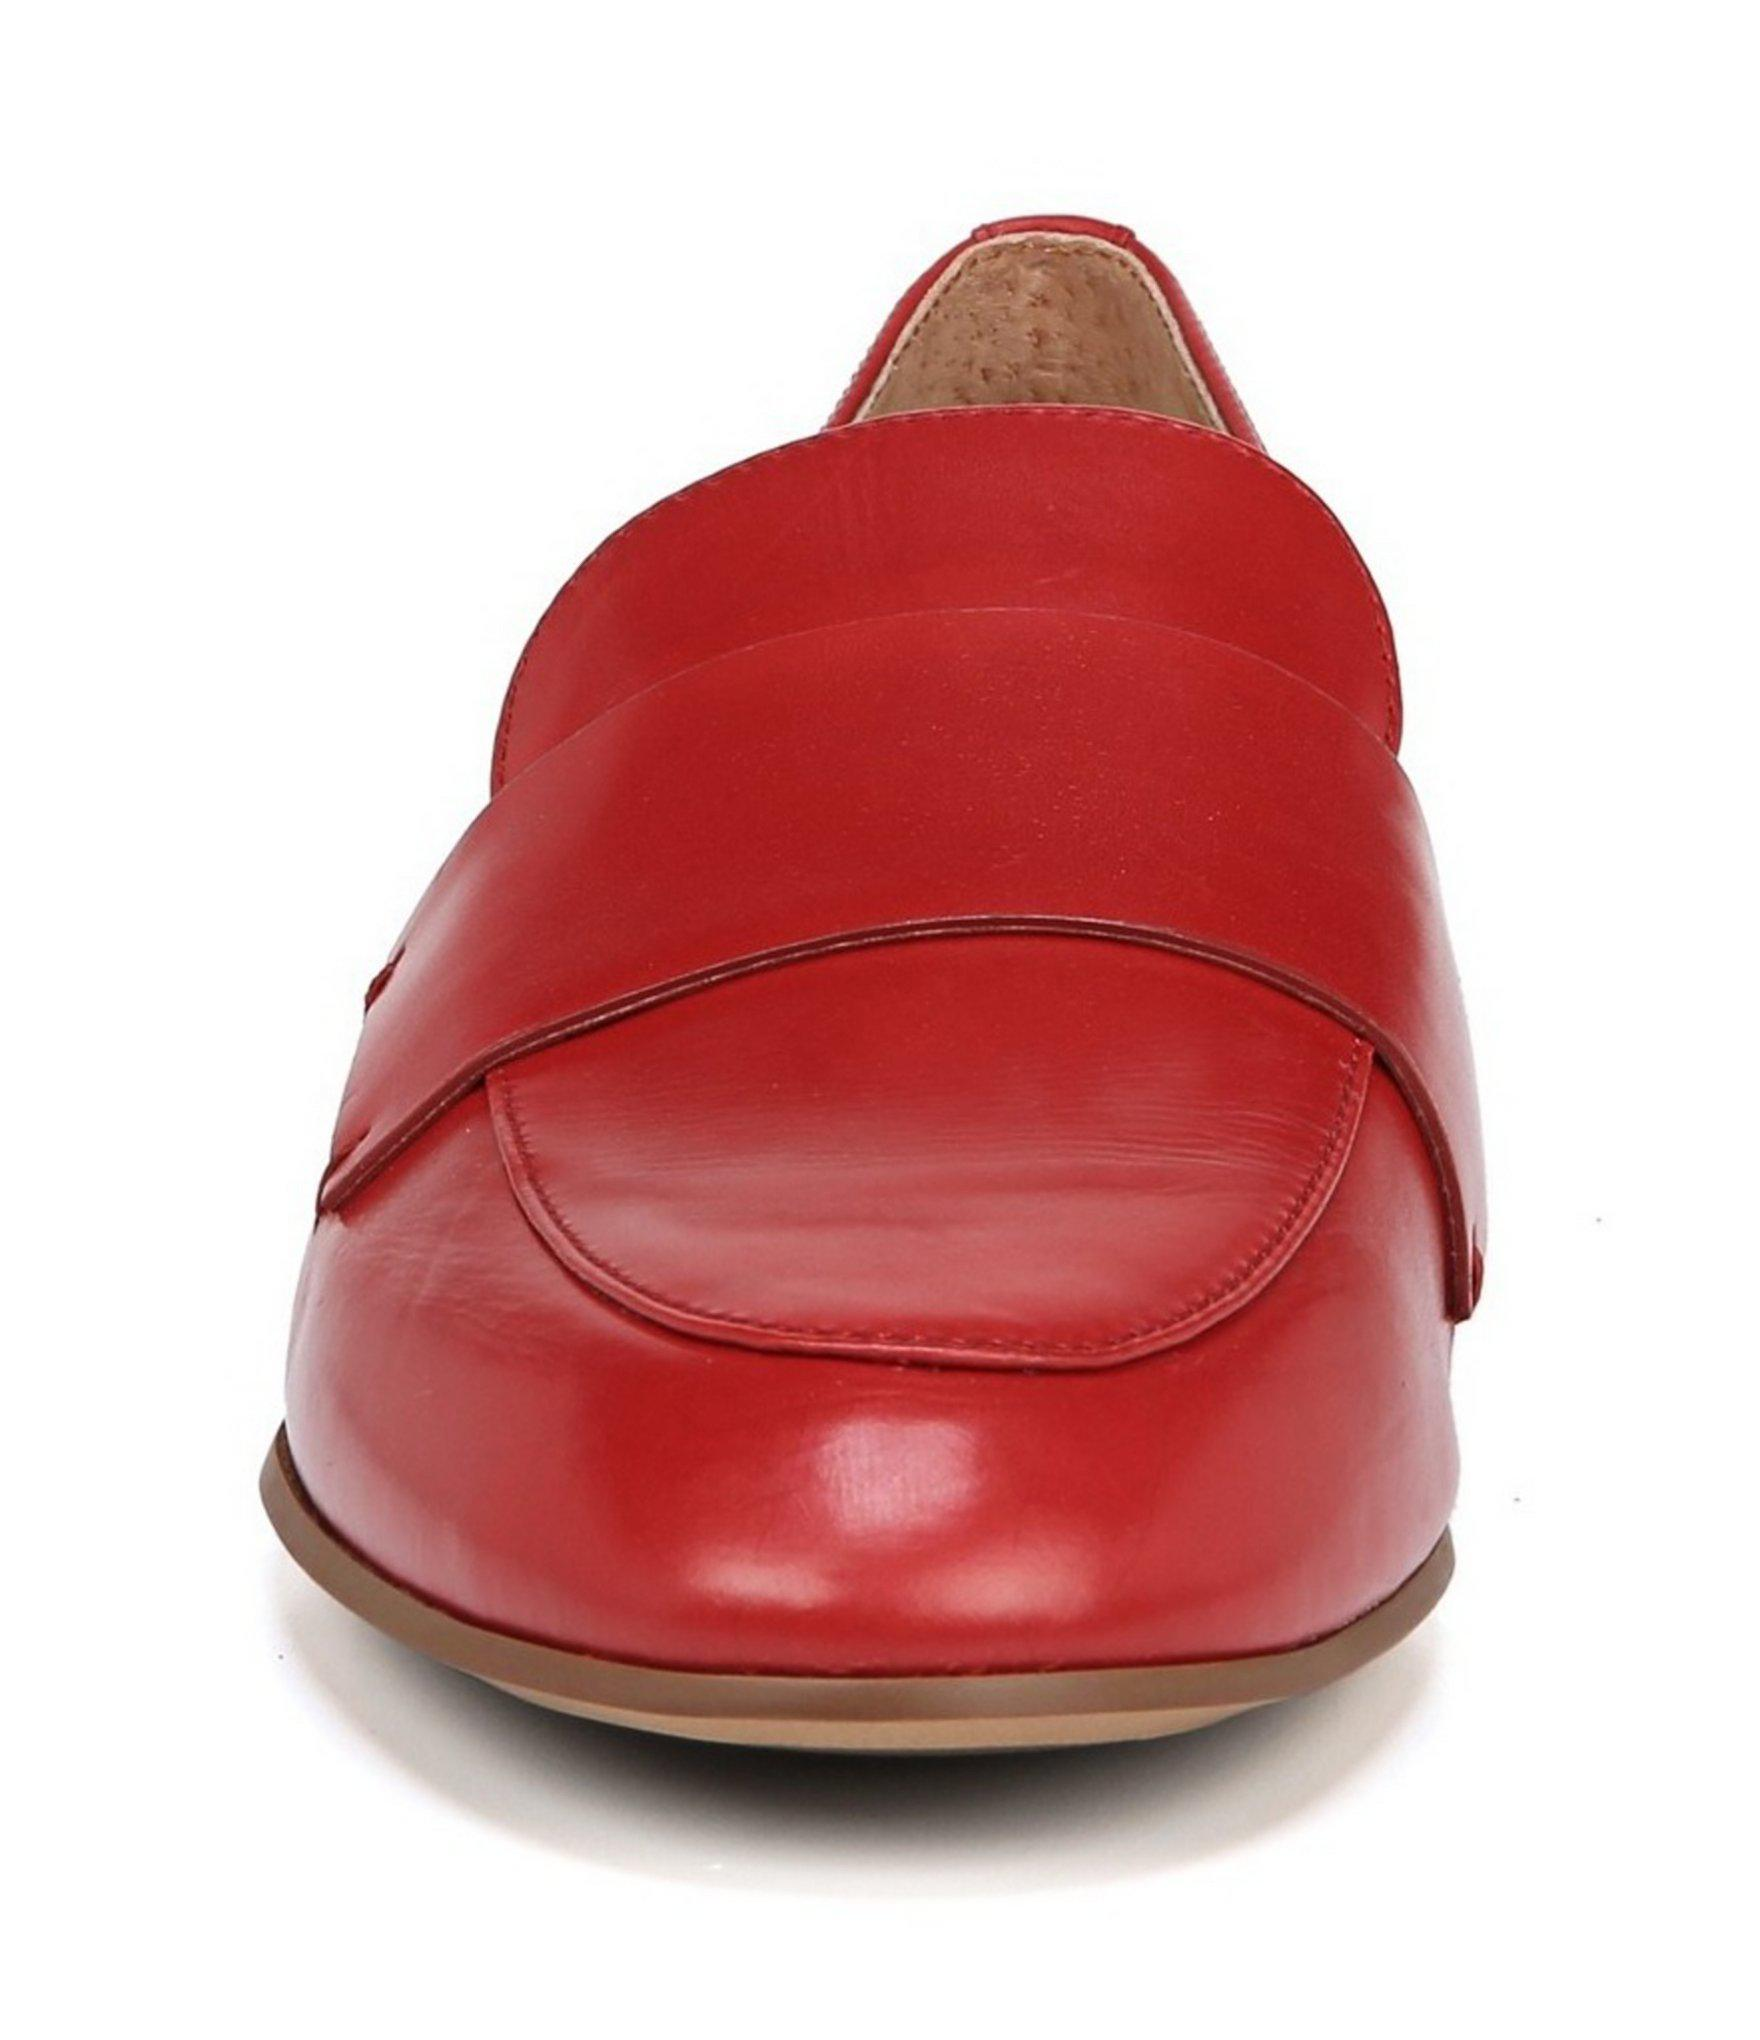 55733fca41e Franco Sarto - Red Sarto By Kip Leather Loafers - Lyst. View fullscreen